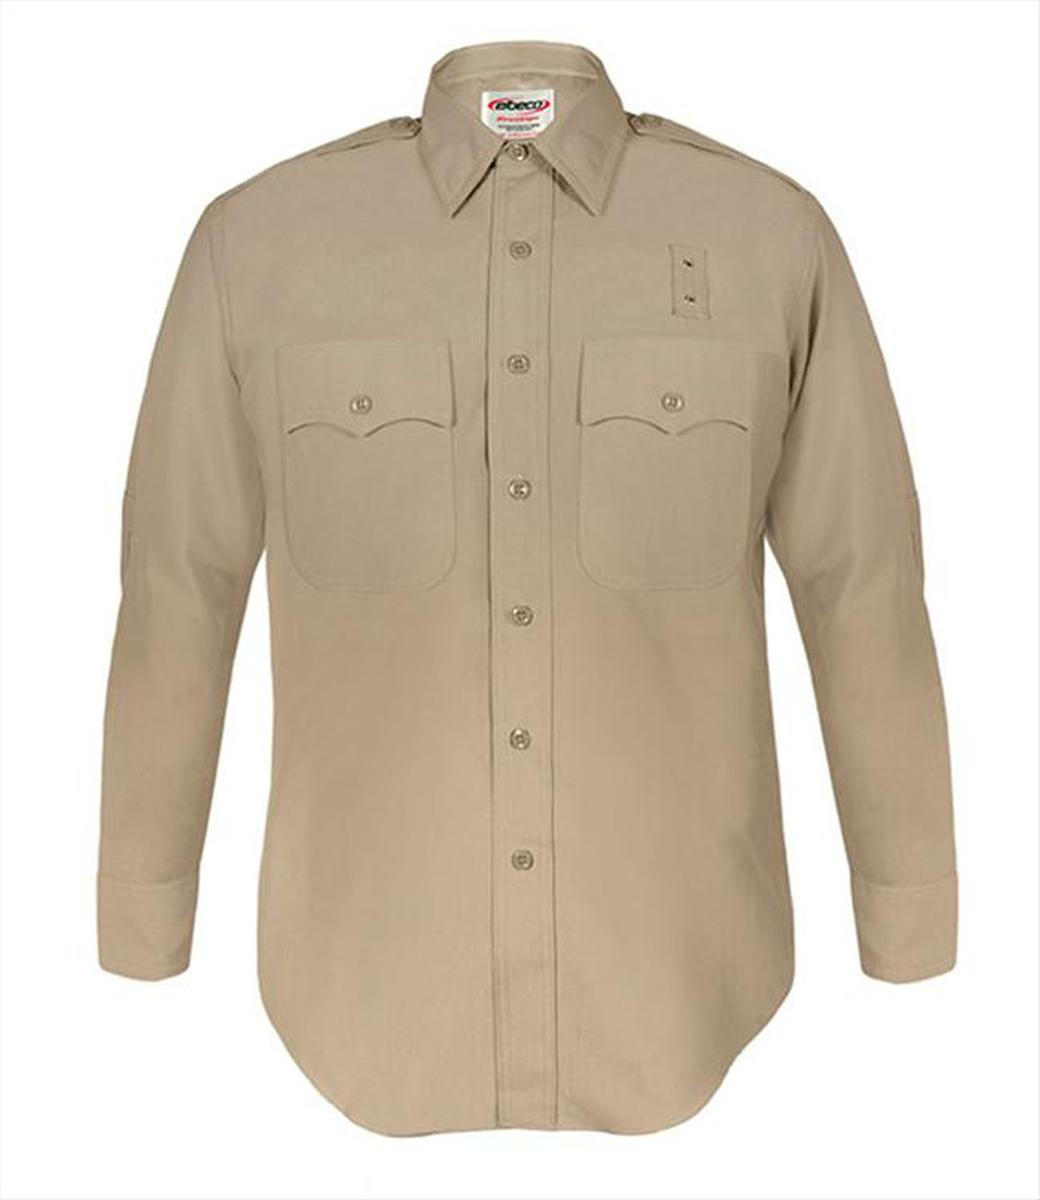 California Highway Patrol Class A Wool Blend Long Sleeve Shirts for Men-Elbeco